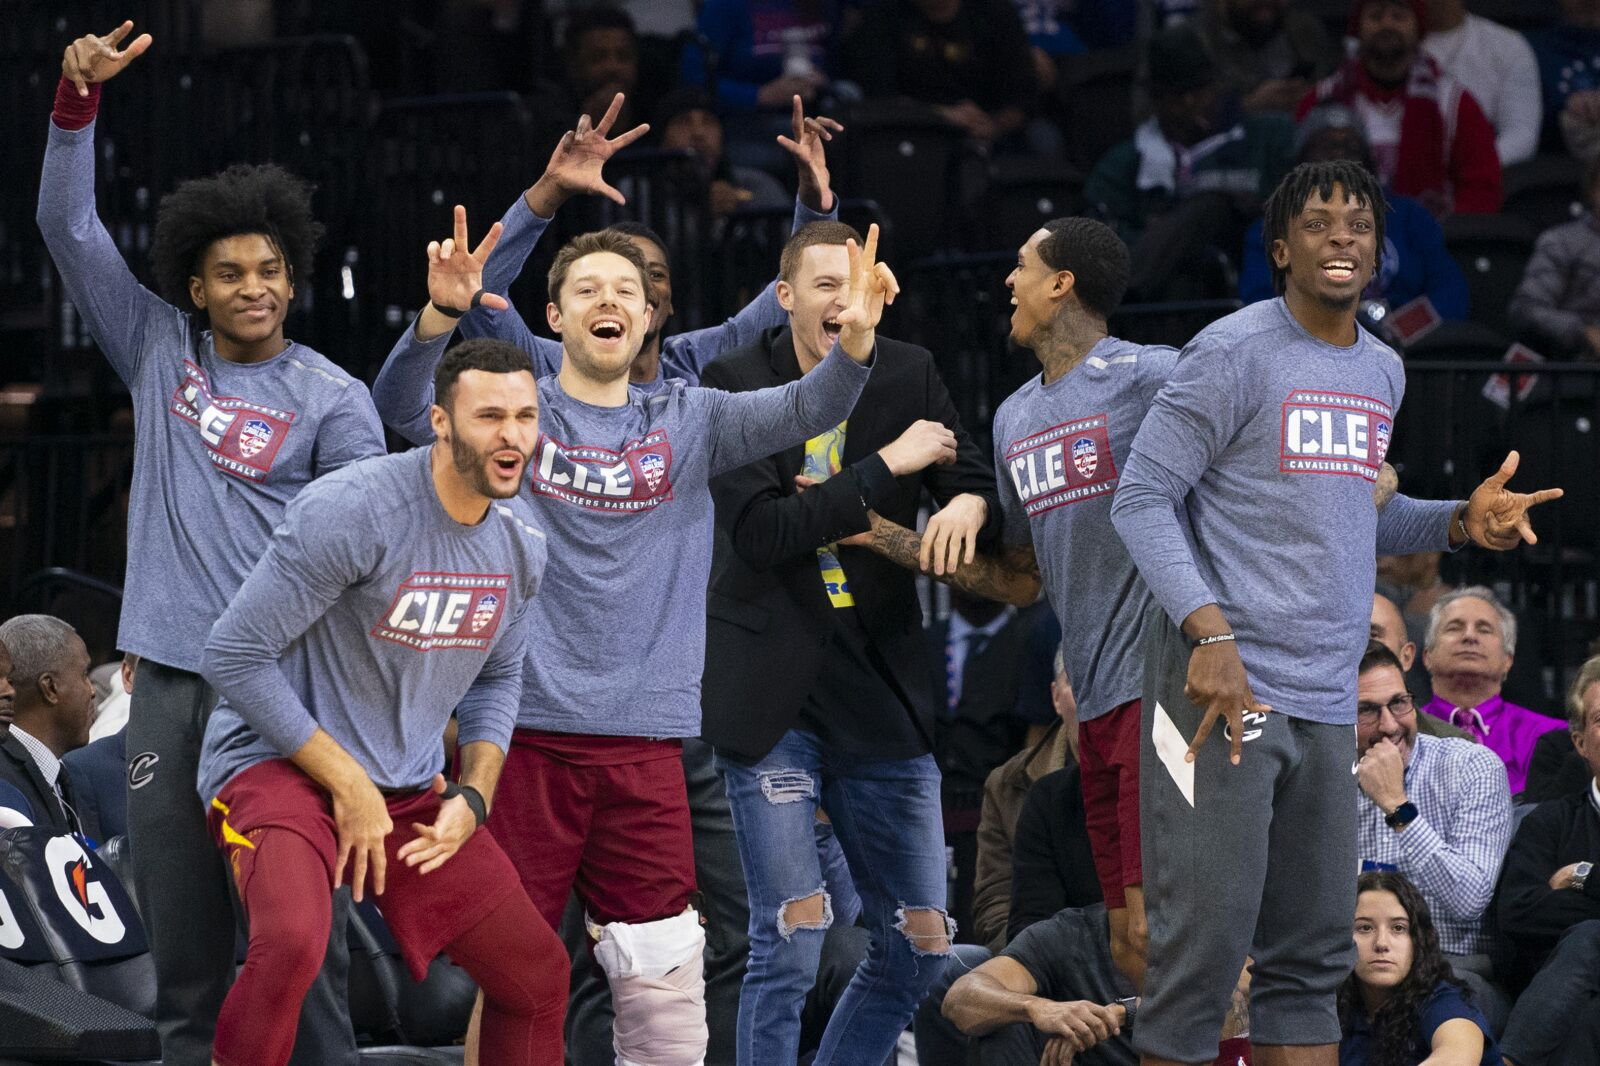 Cavs: A recent interview with Matthew Dellavedova shows he's fully bought into changed role